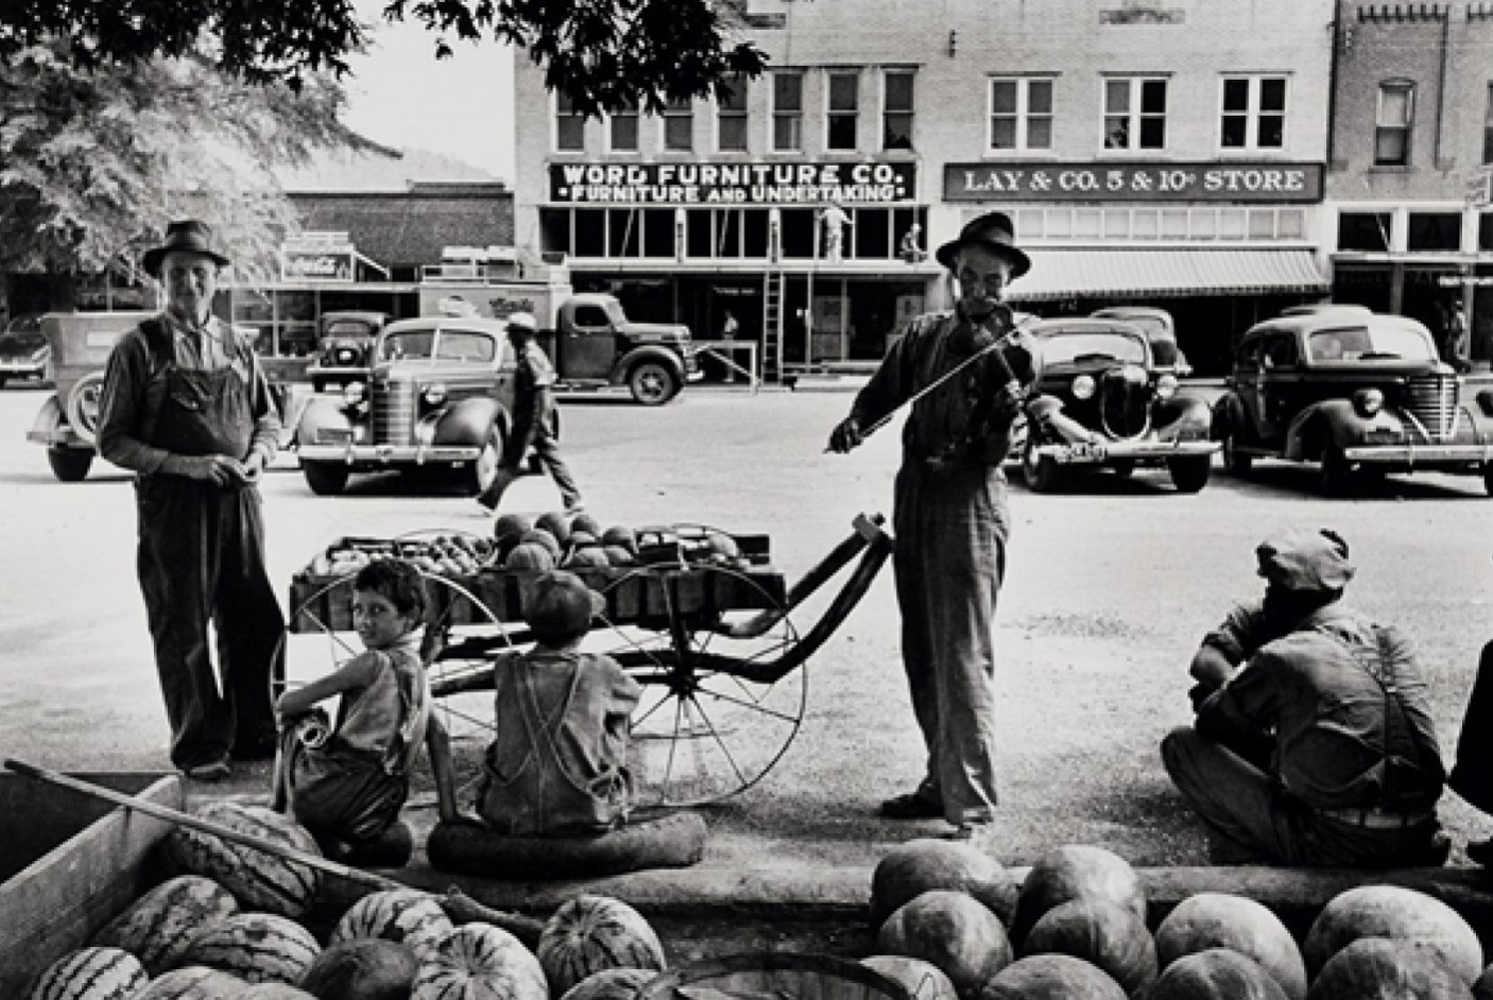 Melon Salesman And Fidler At a Marketplace in Scott, Mississippi